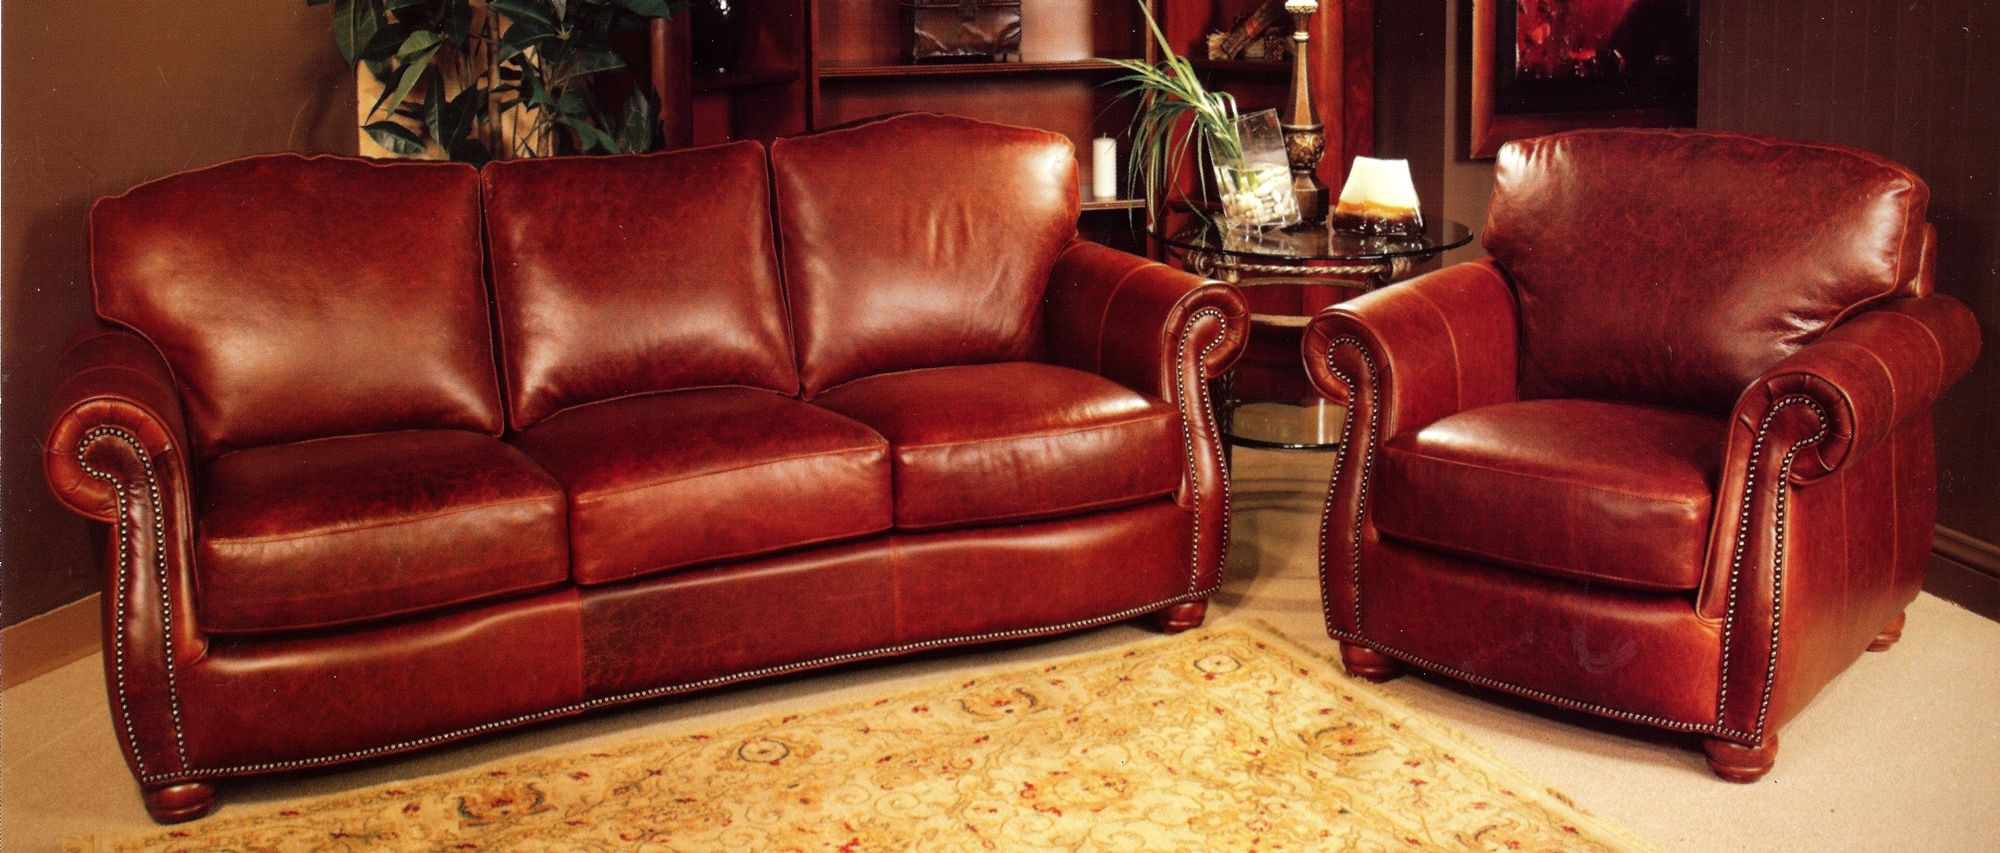 Rustic Red Leather Sofa And Rustic Red Leather Chair With Rustic Nail Head  Trim